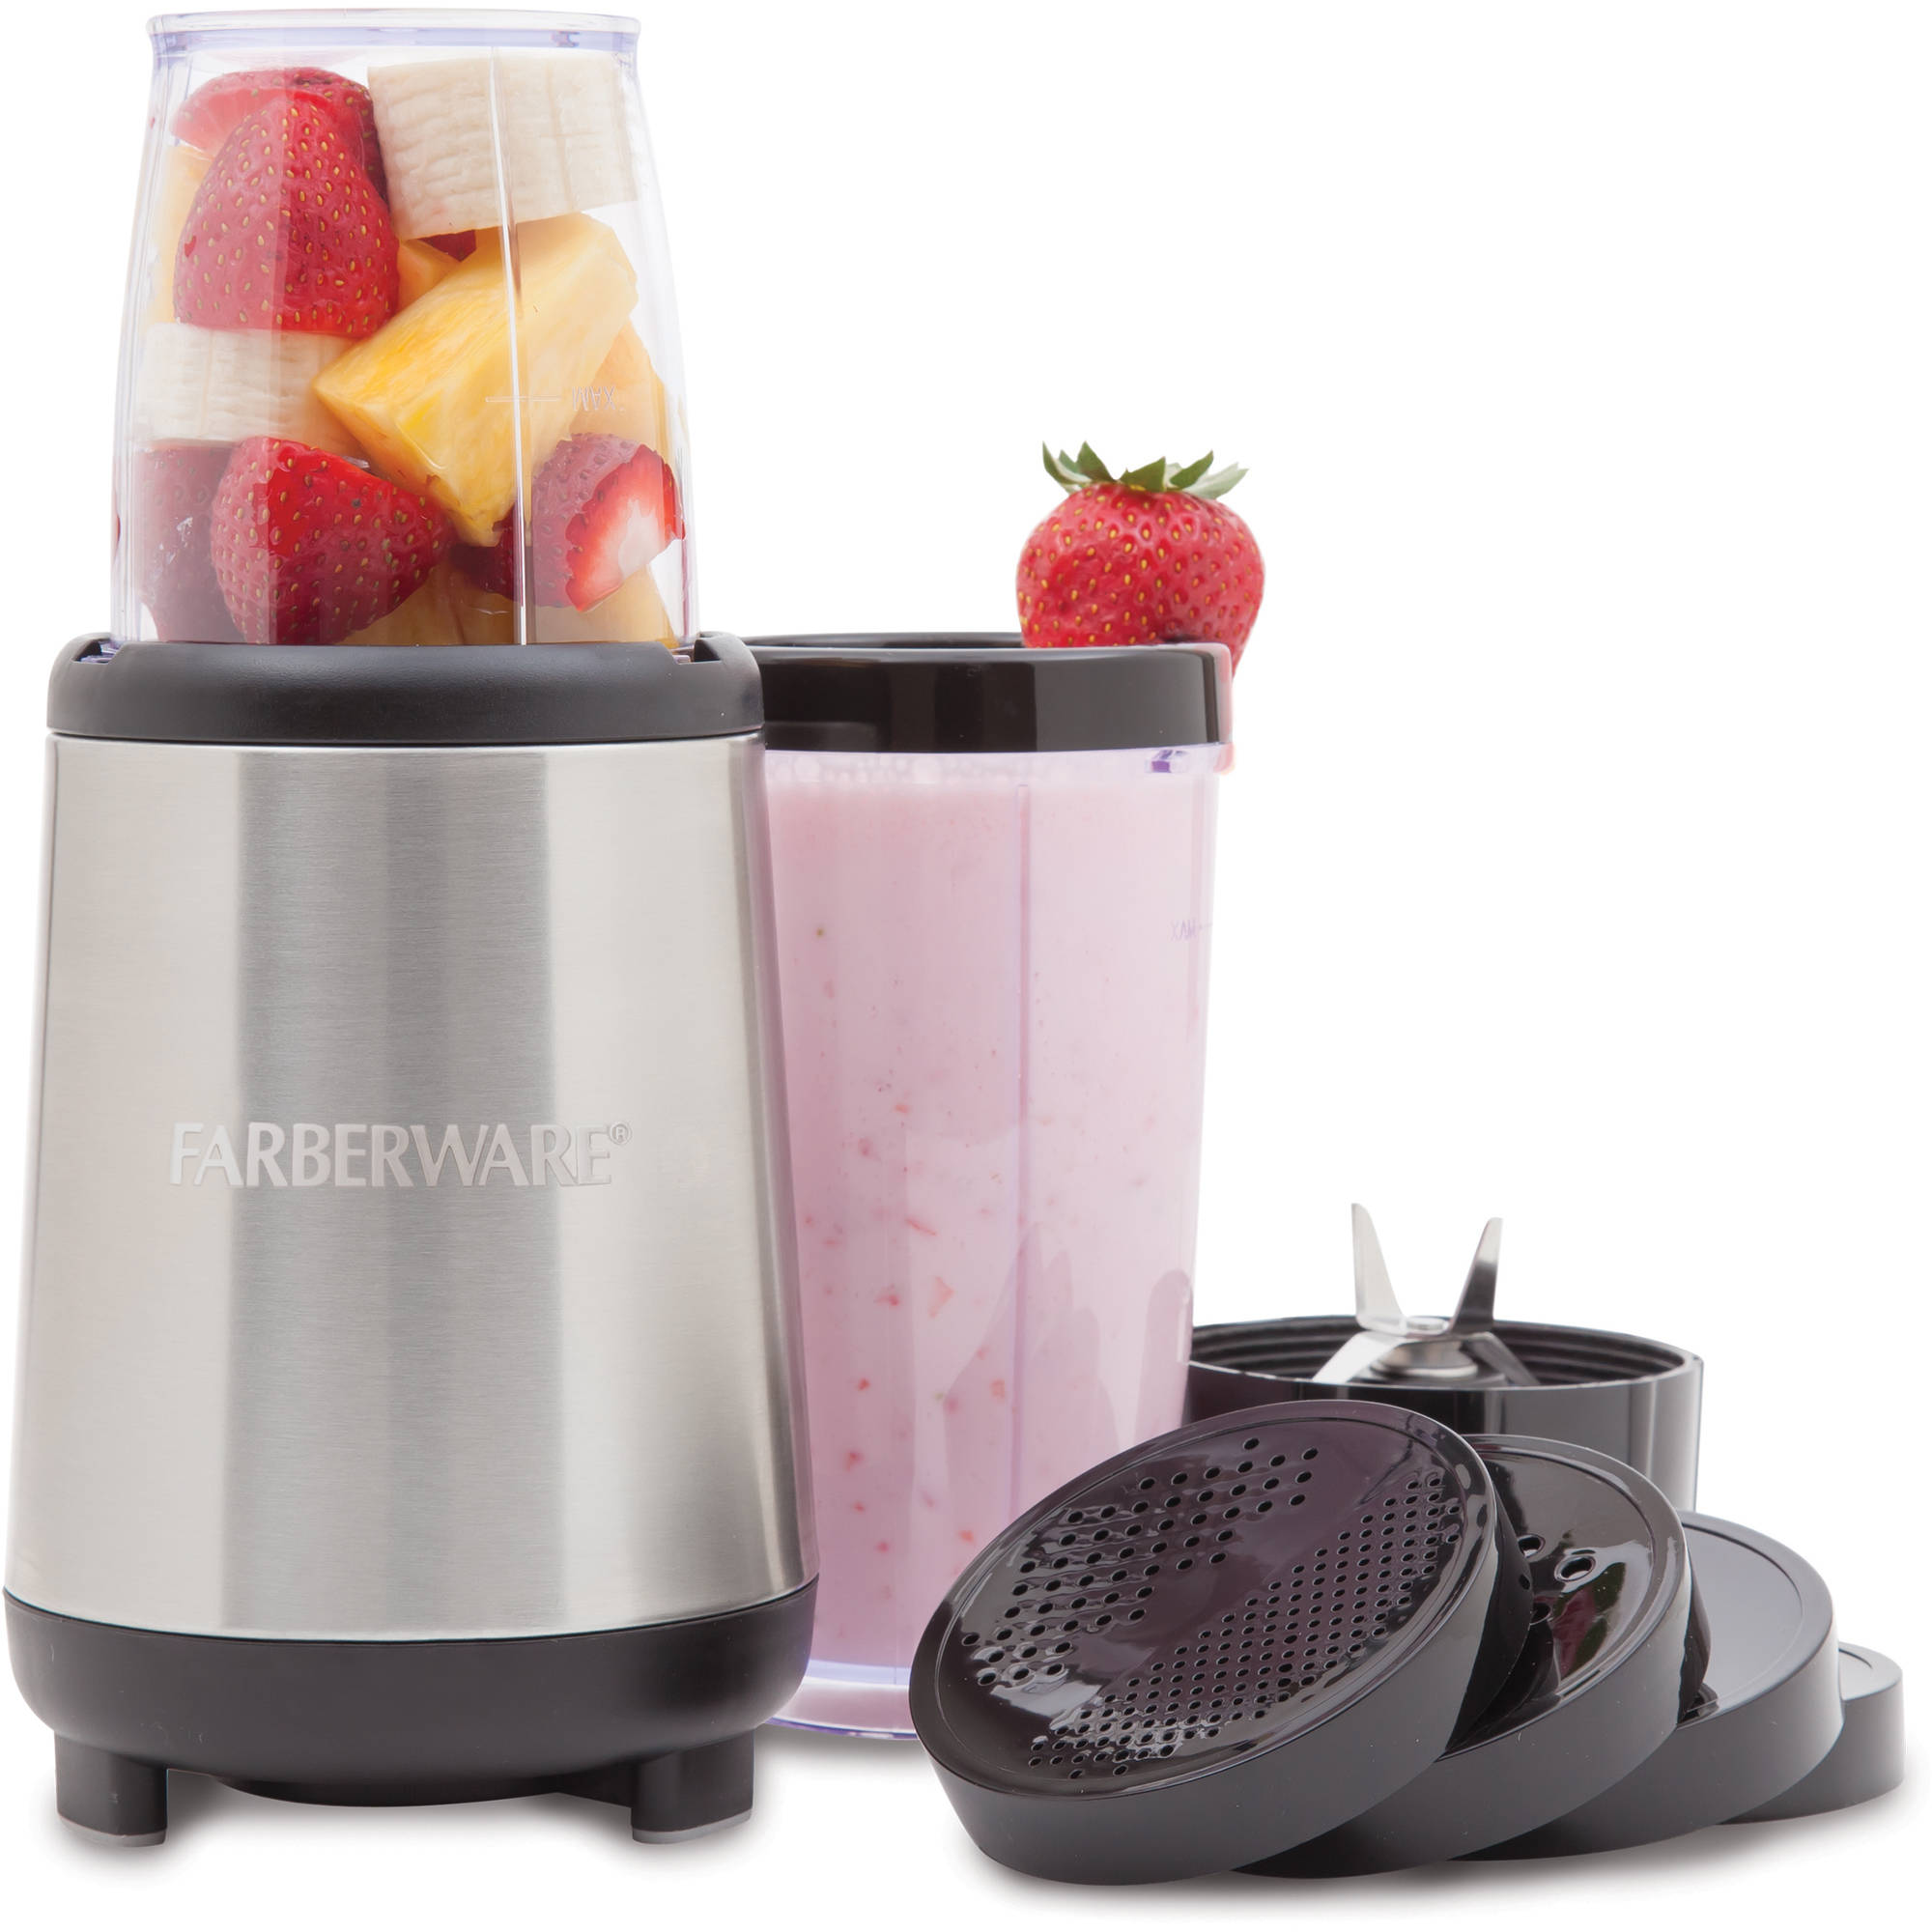 Farberware 17-Piece Single-Serve Blender Set